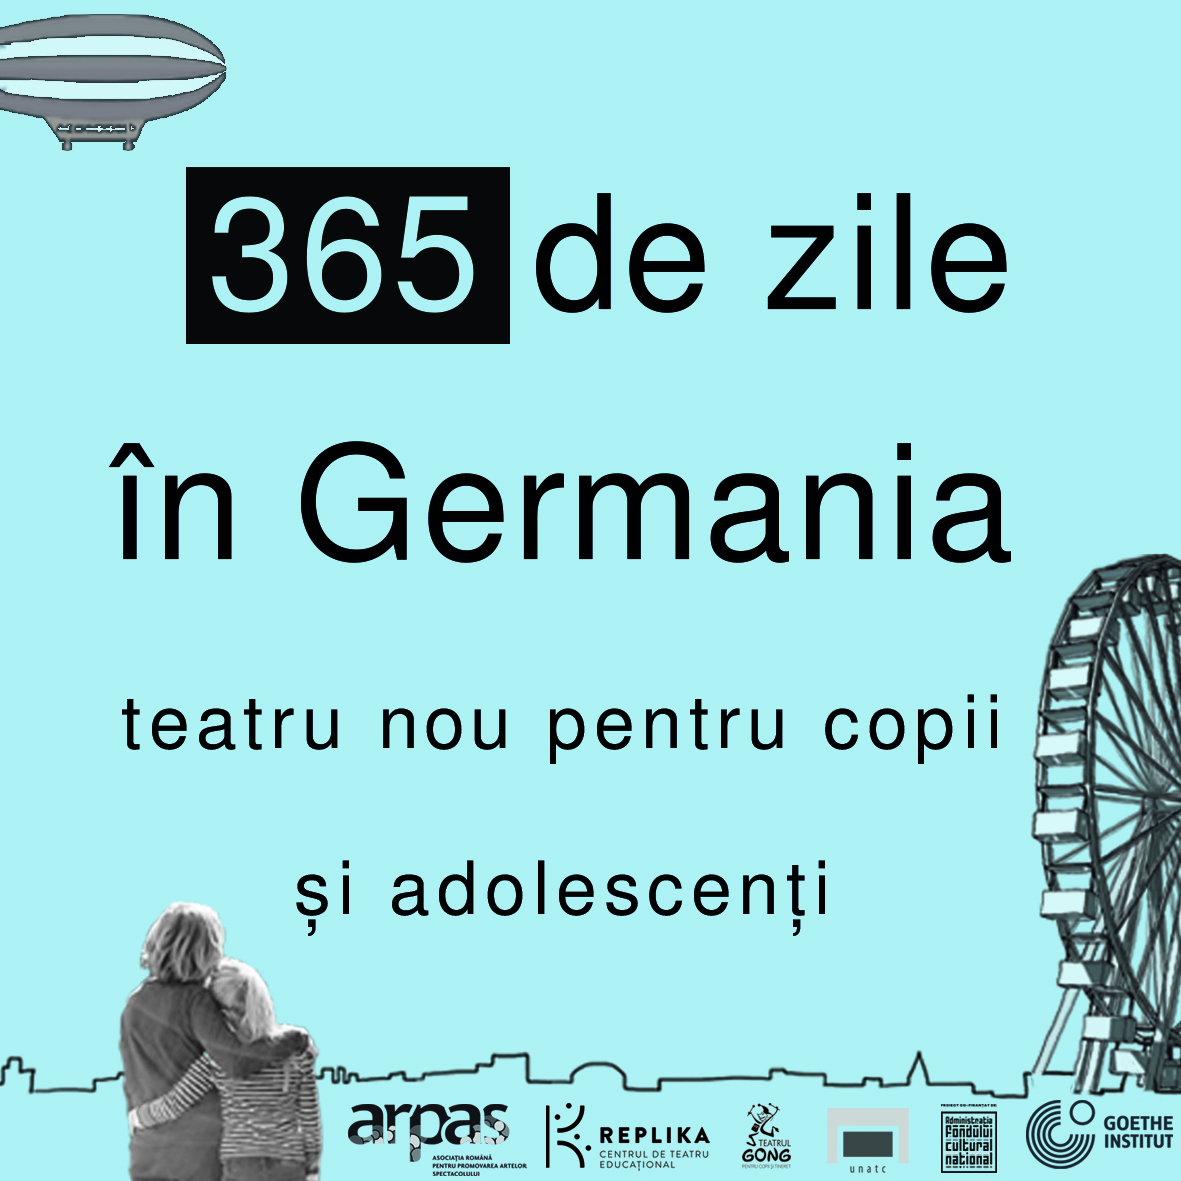 365 zile in germania